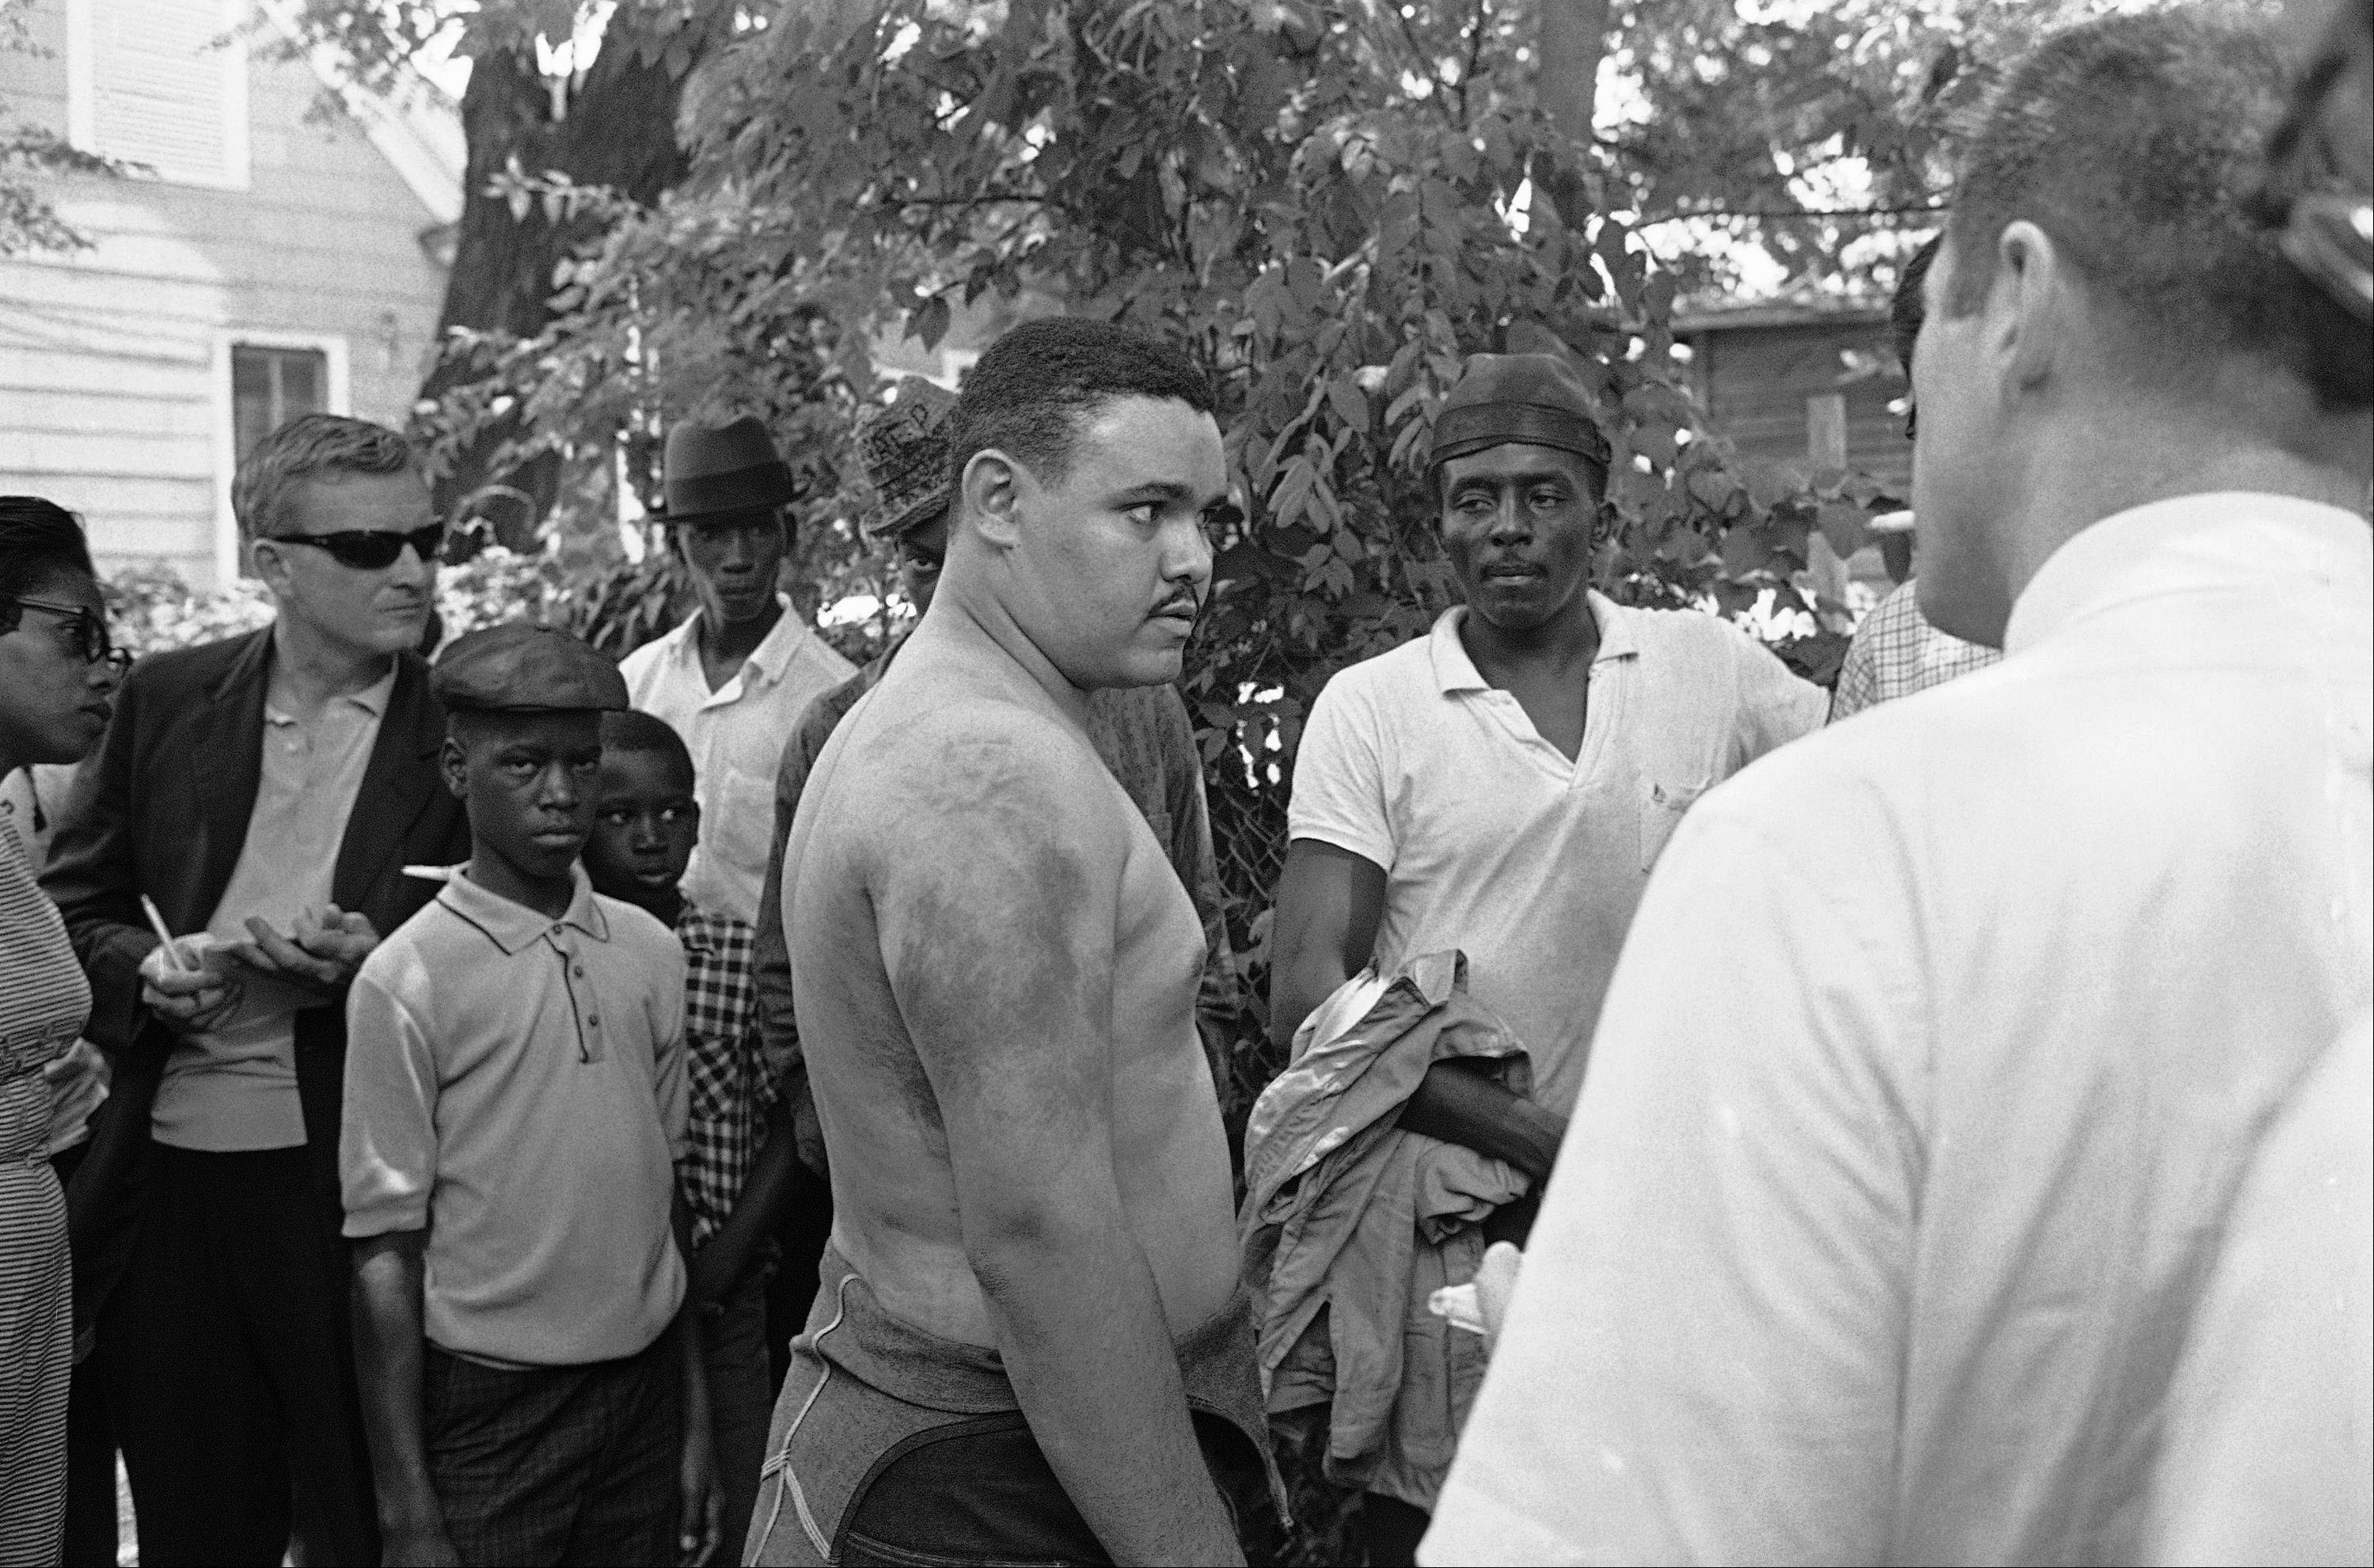 Lawrence Guyot, then 23, removed his shirt in Jackson, Miss., to show newsmen where he said Greenwood and Winona police beat him with leather slapsticks in this June 14, 1963, file photo.